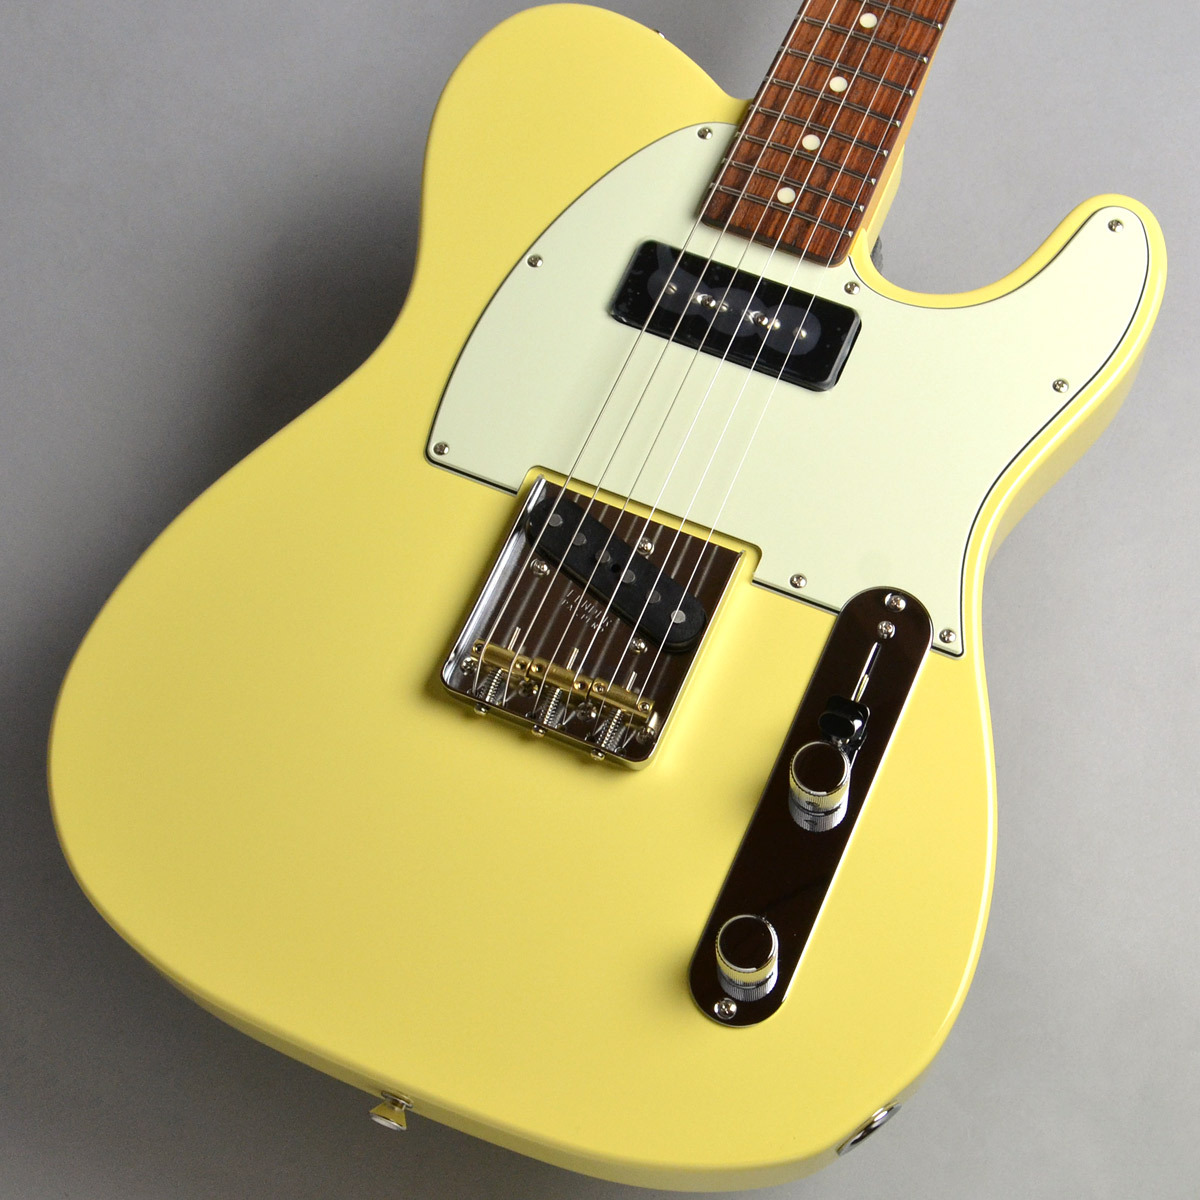 Fender FSR Made in Japan Hybrid 60s Telecaster P-90/Vintage White エレキギター 【フェンダー】【新宿PePe店】